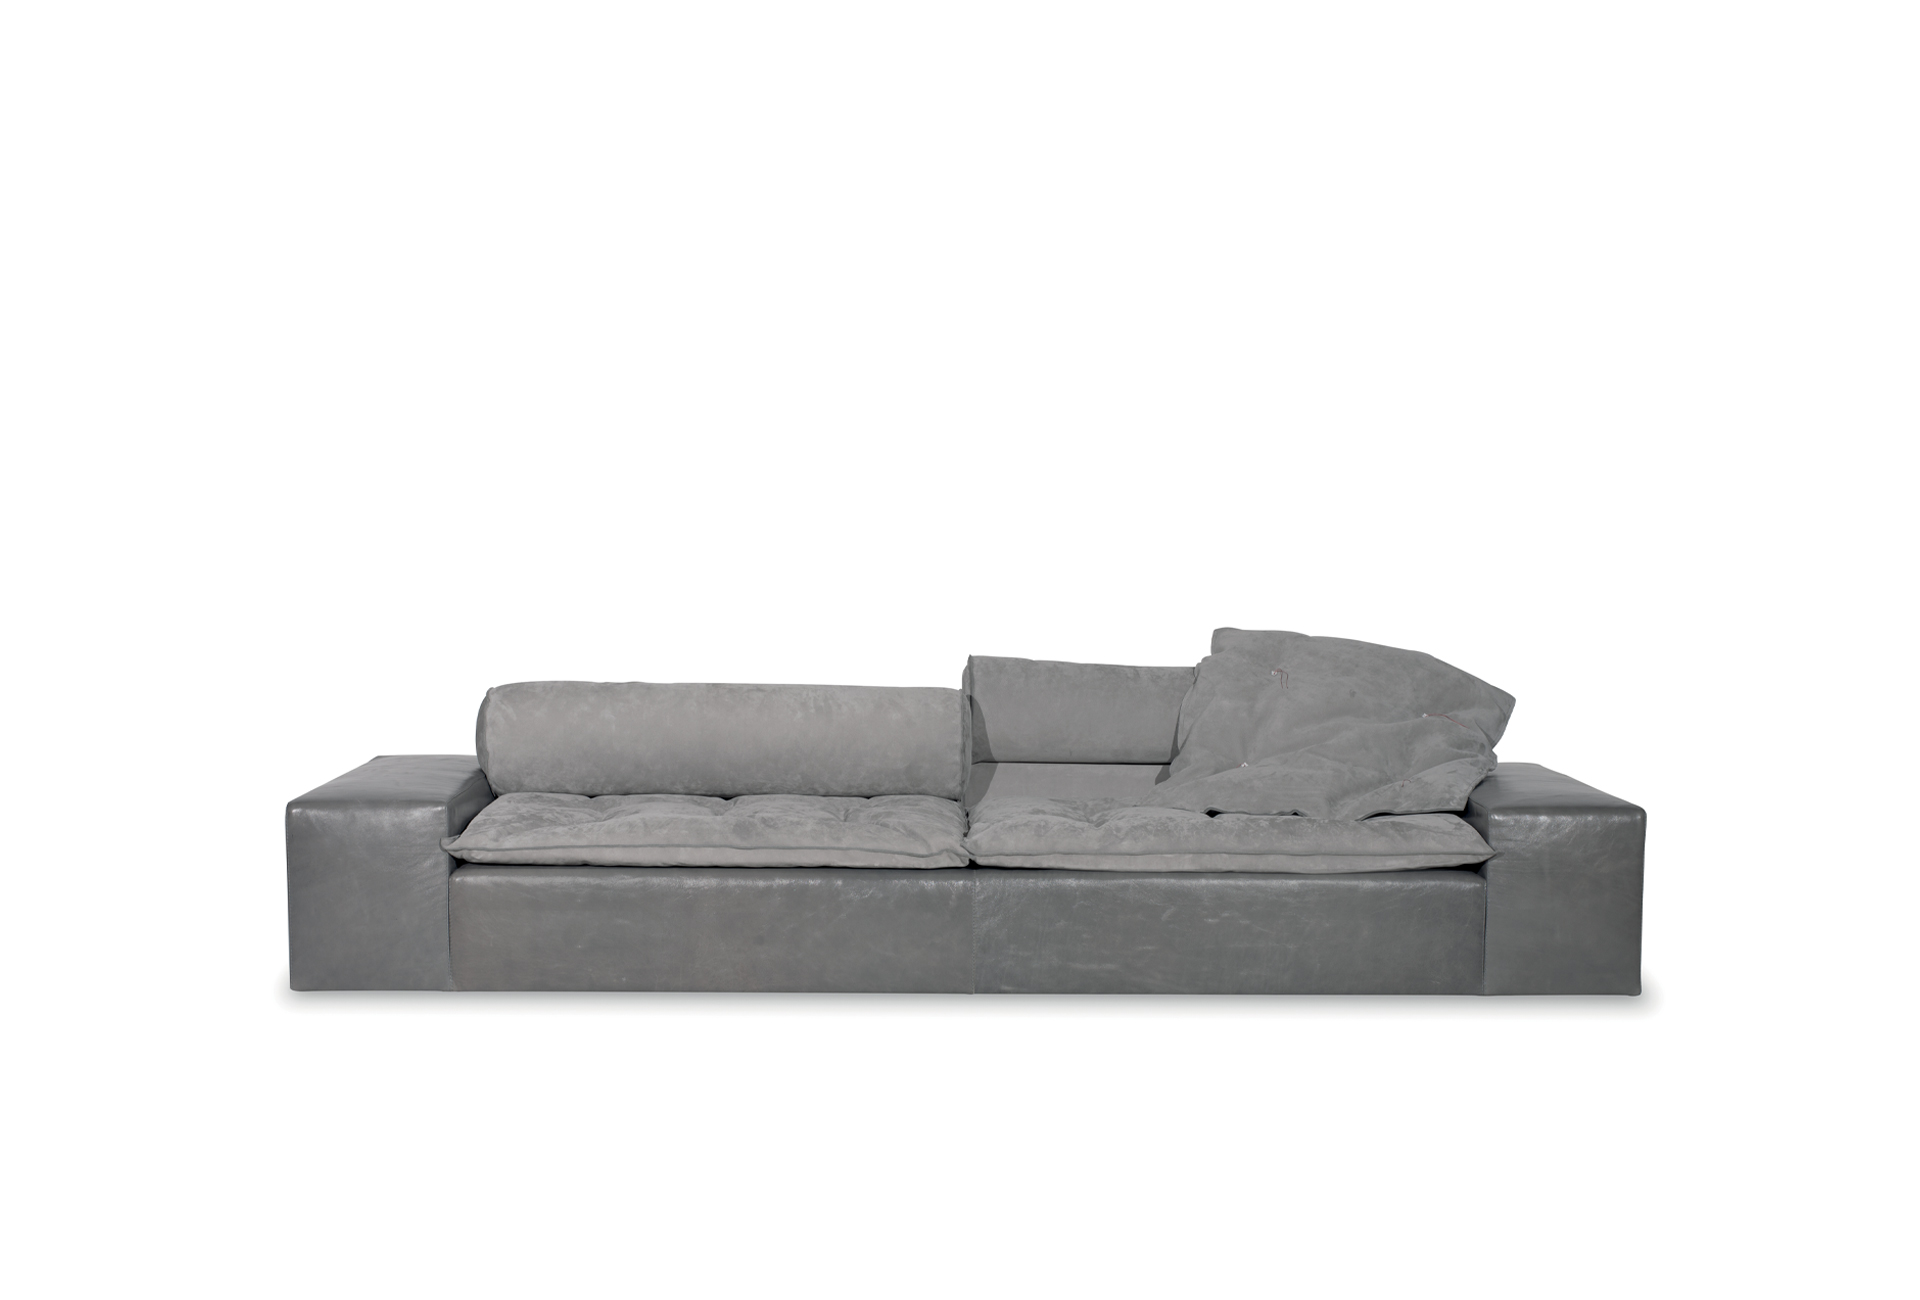 Astounding Leather Sofa Miami Roll Baxter Download Free Architecture Designs Scobabritishbridgeorg